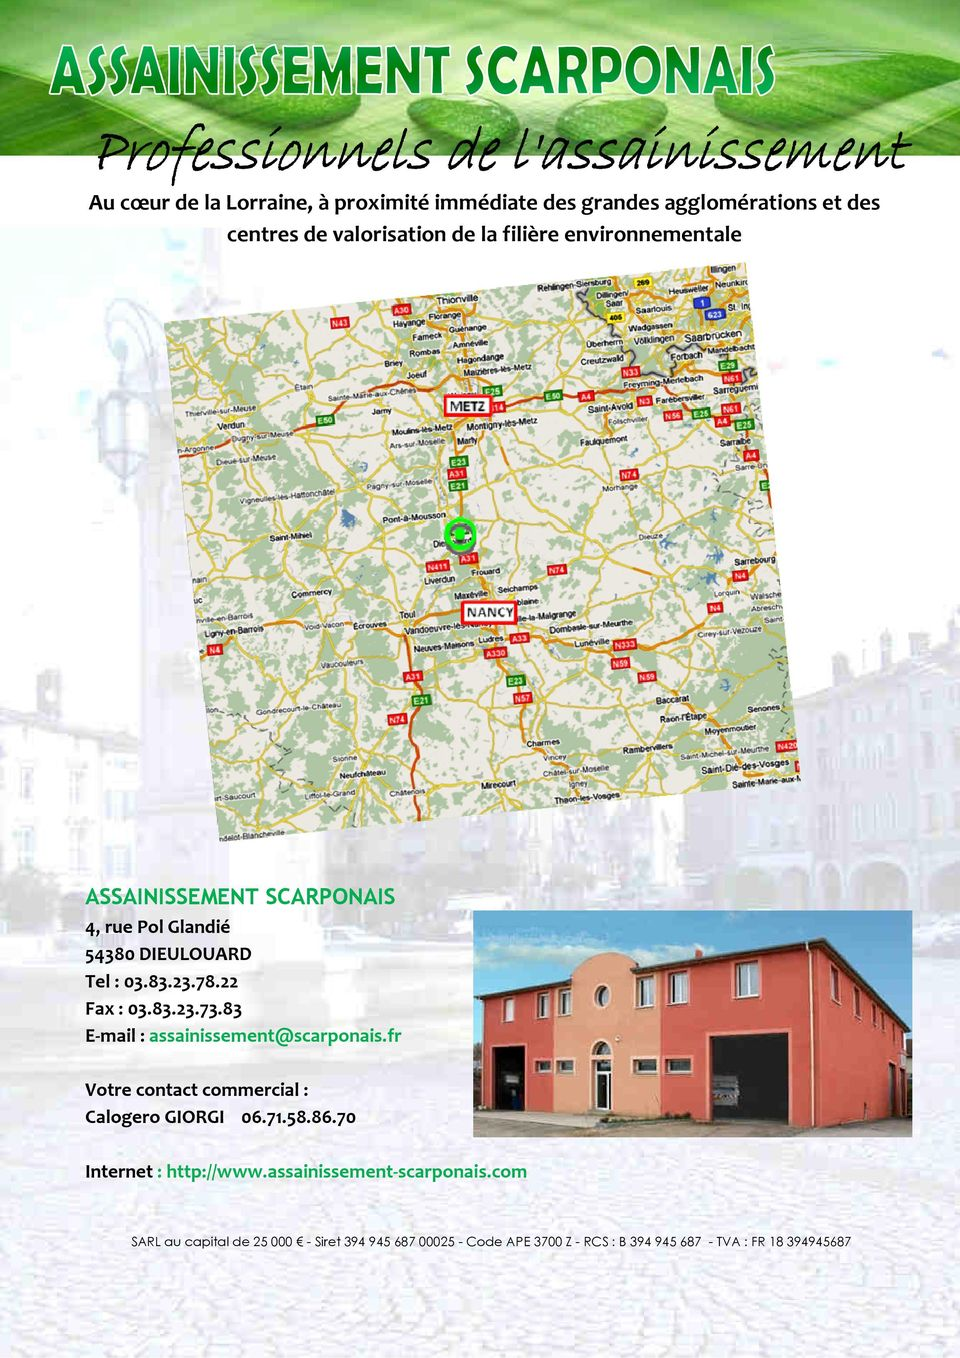 83 E-mail : assainissement@scarponais.fr Votre contact commercial : Calogero GIORGI 06.71.58.86.70 Internet : http://www.